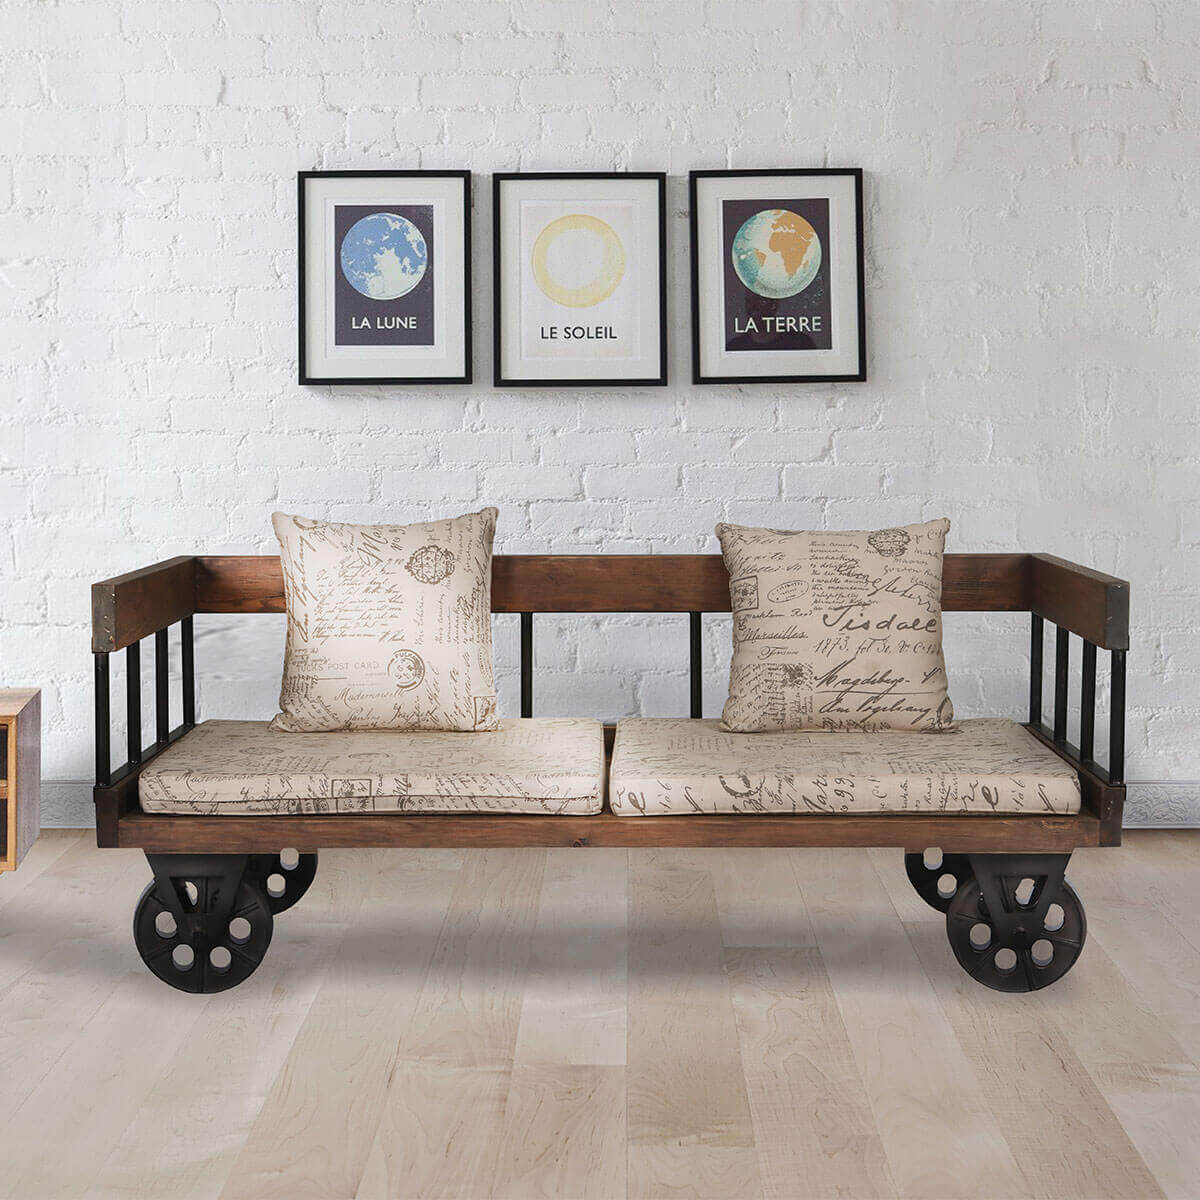 lamlam reclaimed teak wood upholstered two seat industrial style sofa. Black Bedroom Furniture Sets. Home Design Ideas